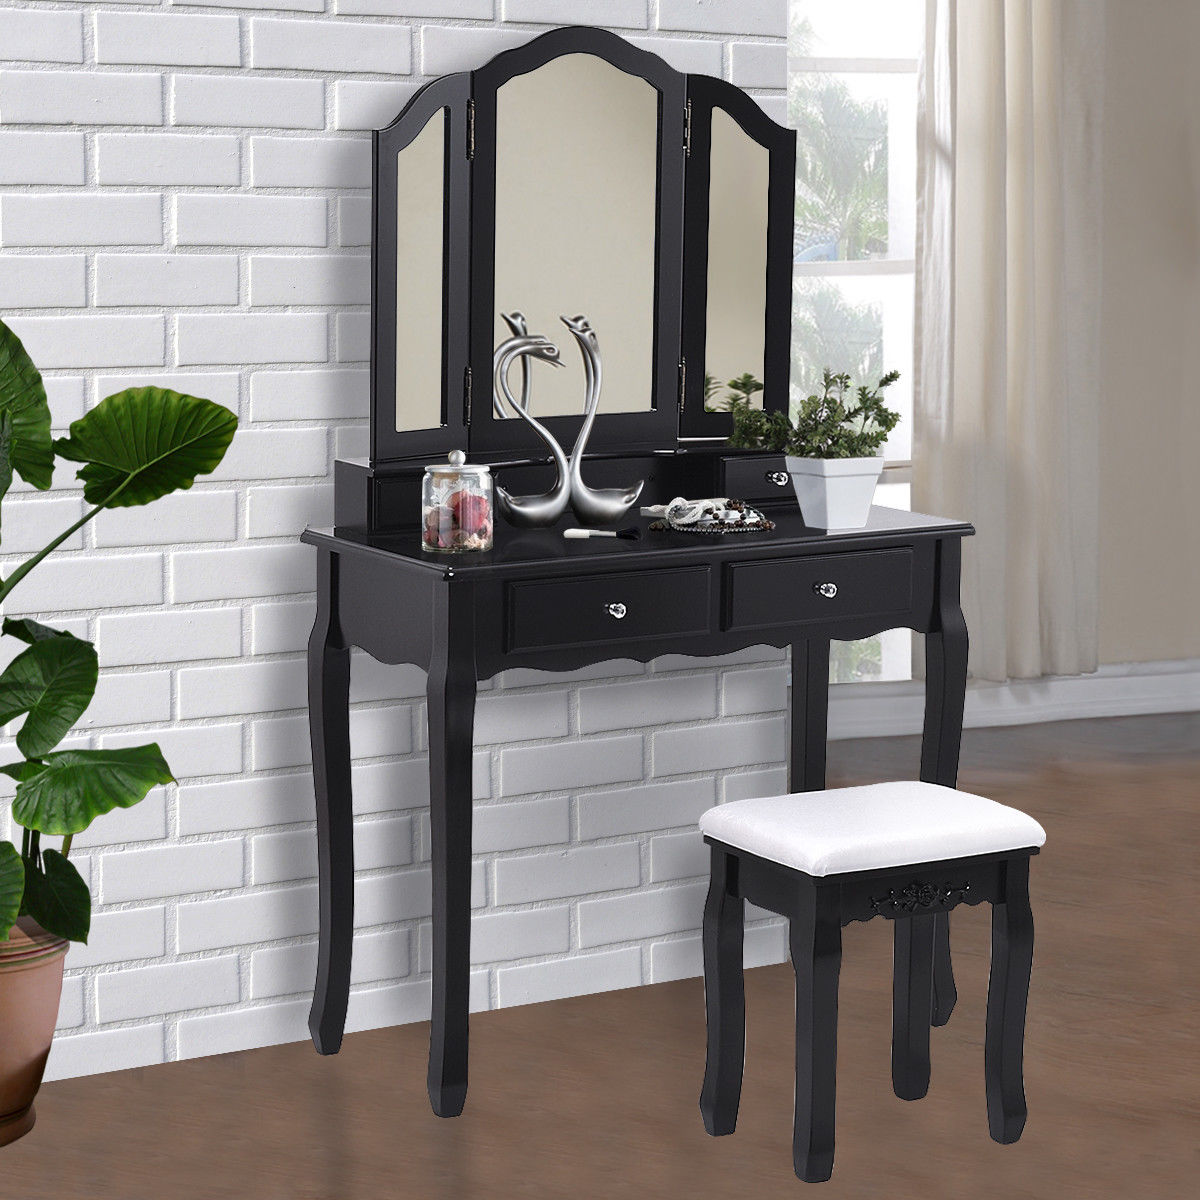 Giantex Black Tri Folding Mirror Vanity Makeup Dressing Table Stool Set Modern Home Bedroom Furniture With 4 Drawers HW55563BK giantex wood makeup dressing table stool set jewelry desk drawer mirror black home furniture hw52951bk